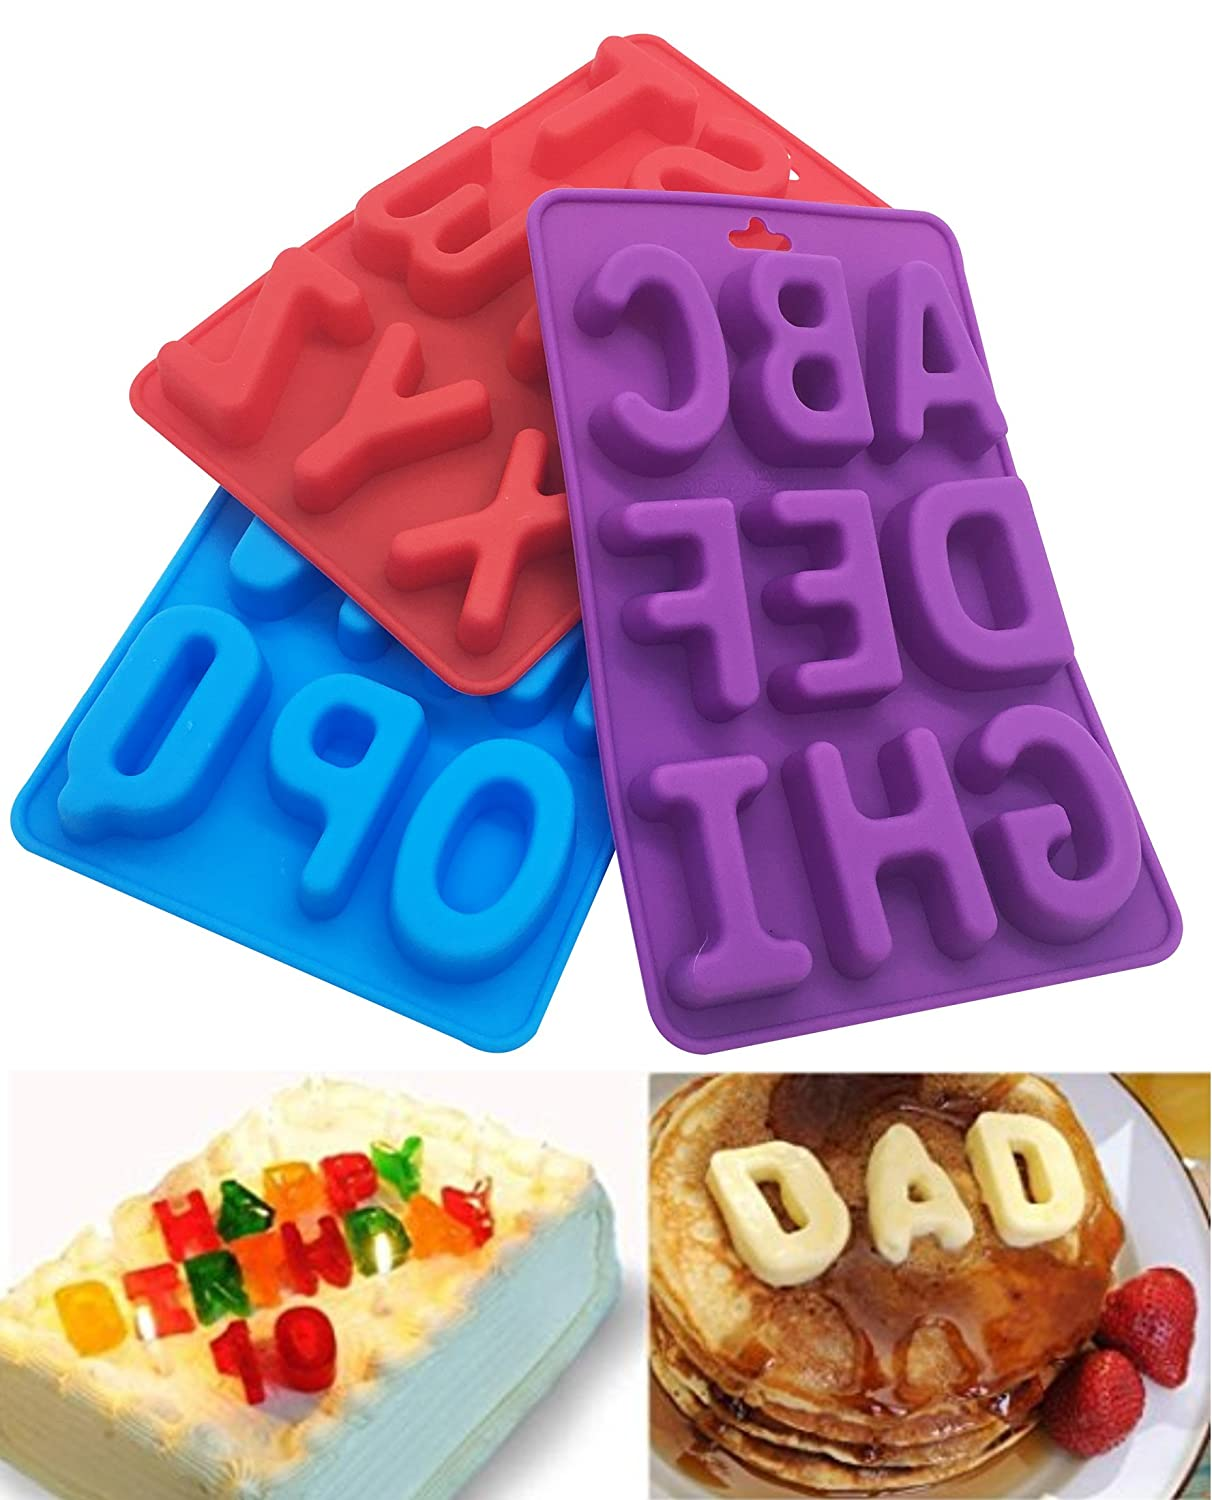 3Pcs/Set Of 26 Capital Letters DIY Mold Silicone Handmade Cake Decoration Chocolate Ice Jelly Mould Tray Kootips-1-4001